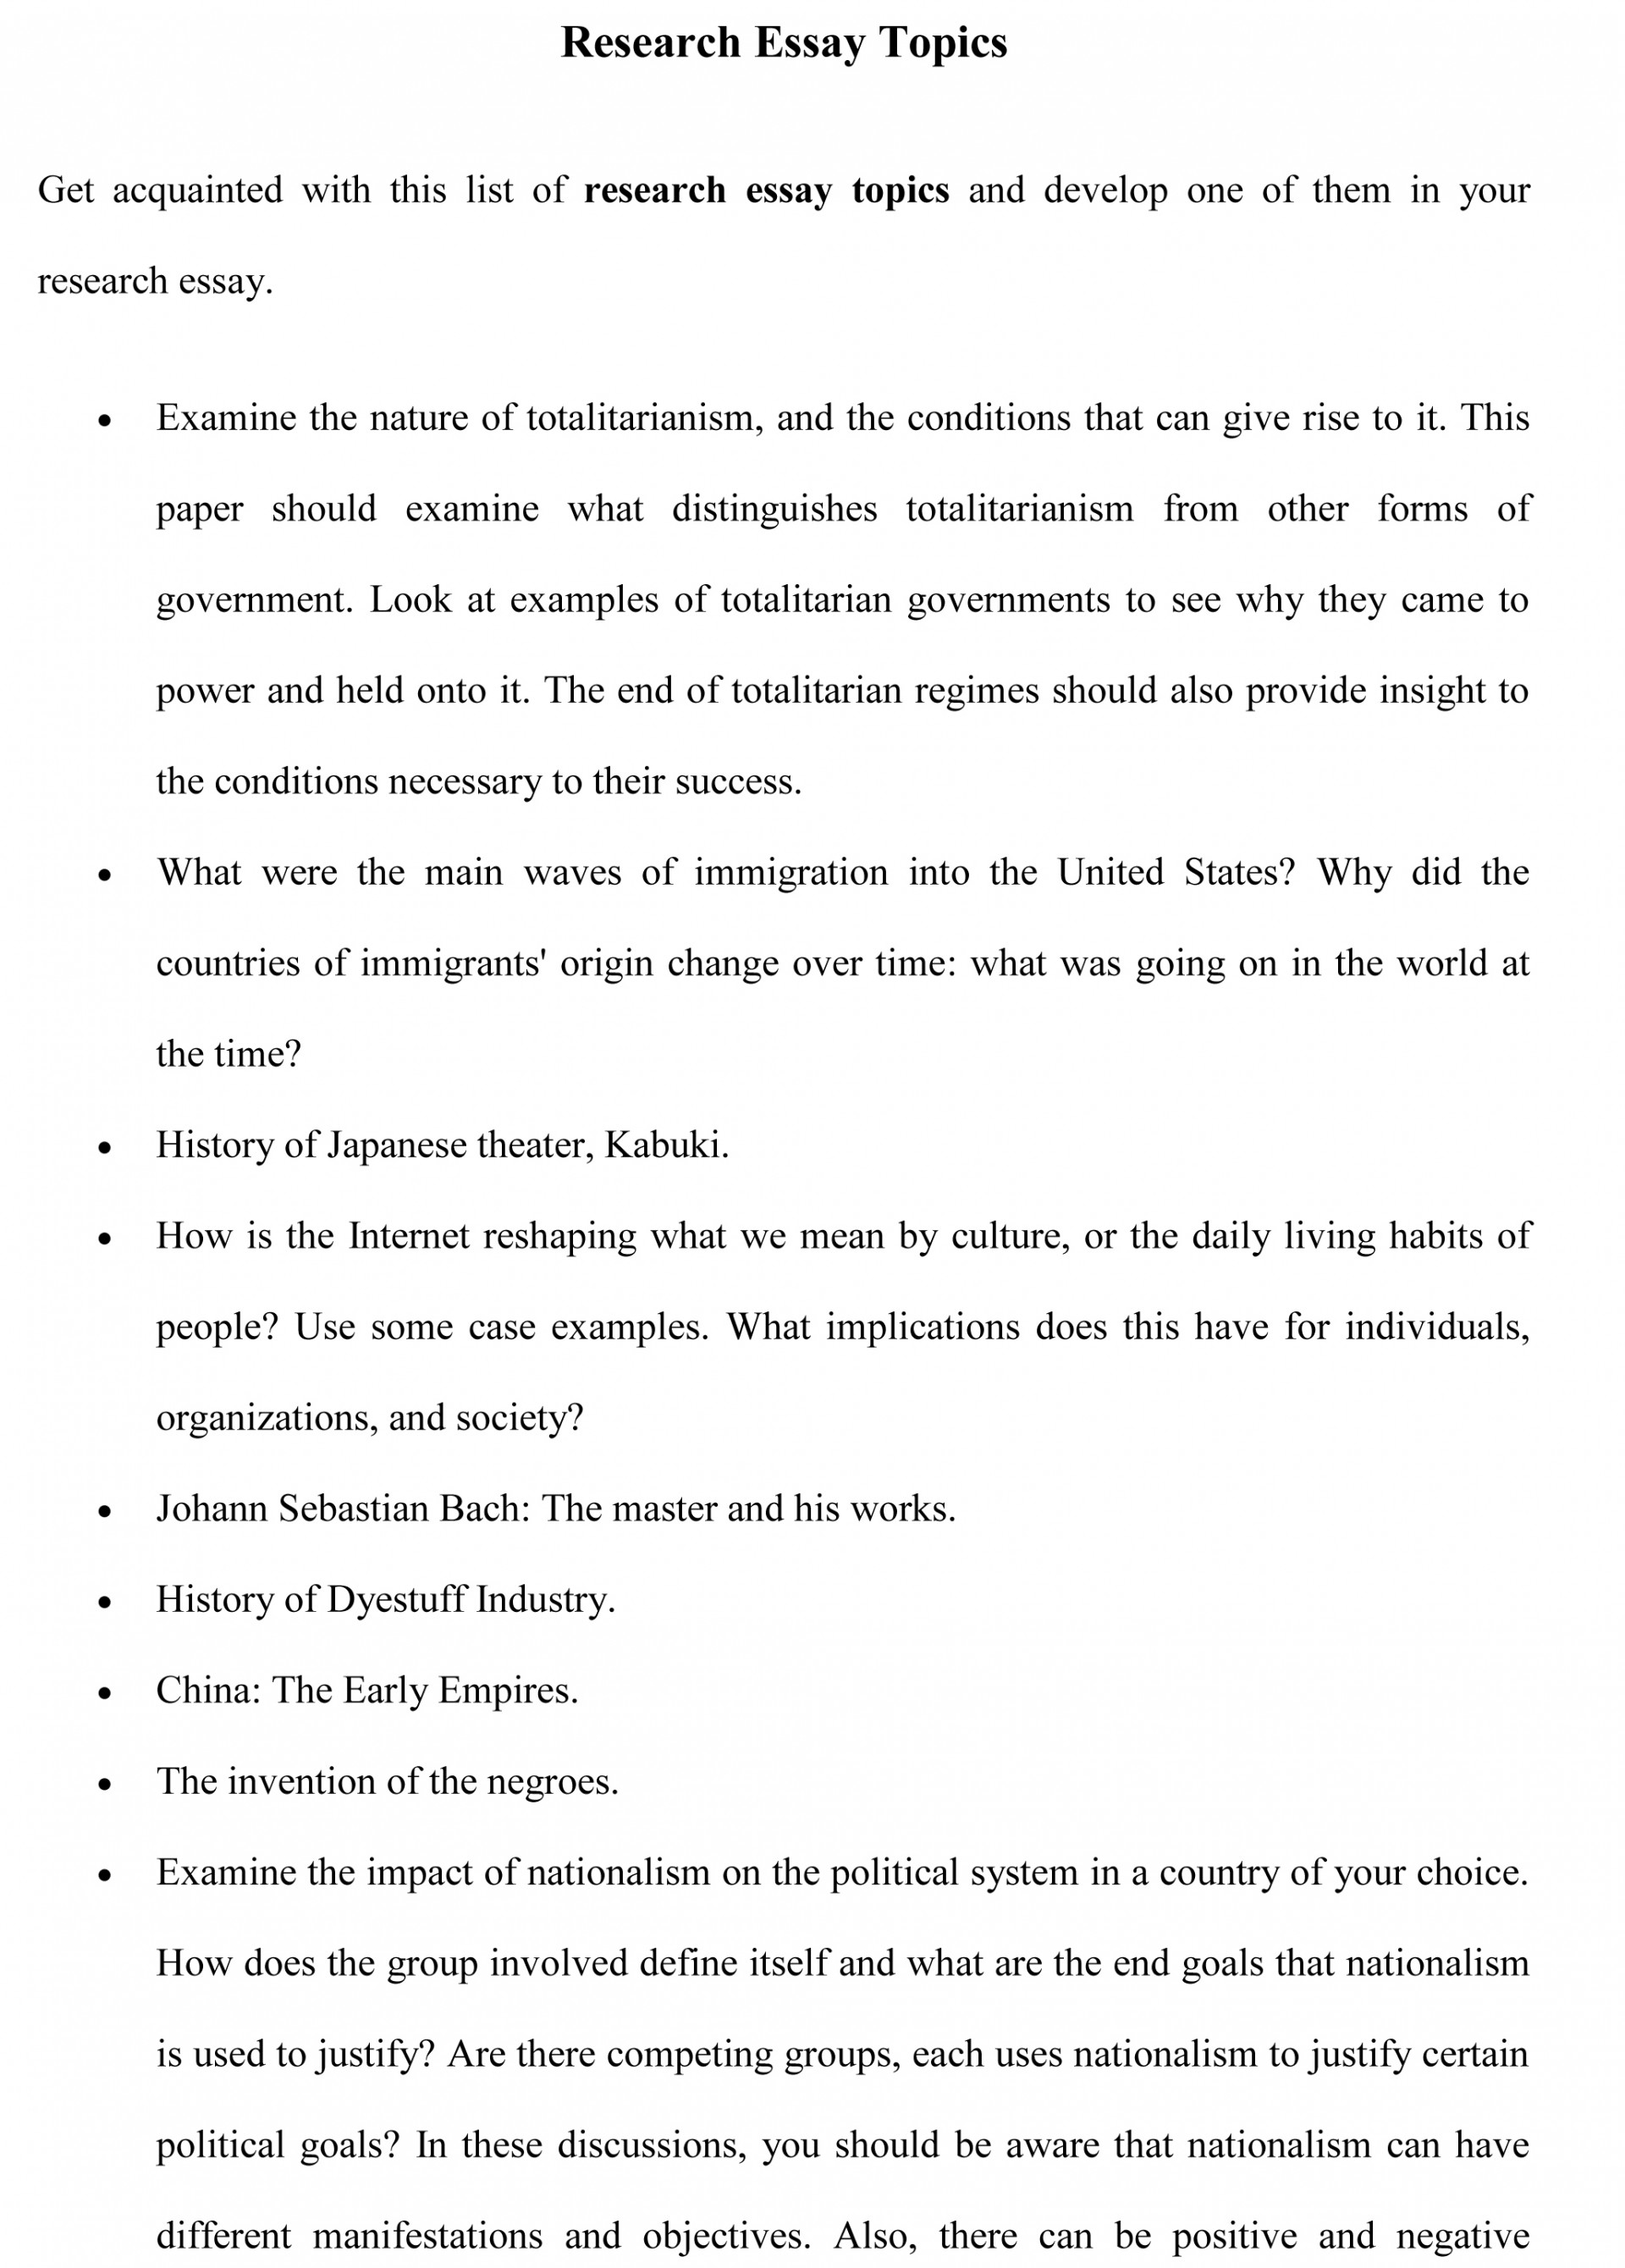 002 Essay Example Research Topics Sample Imposing Paper Format 1920